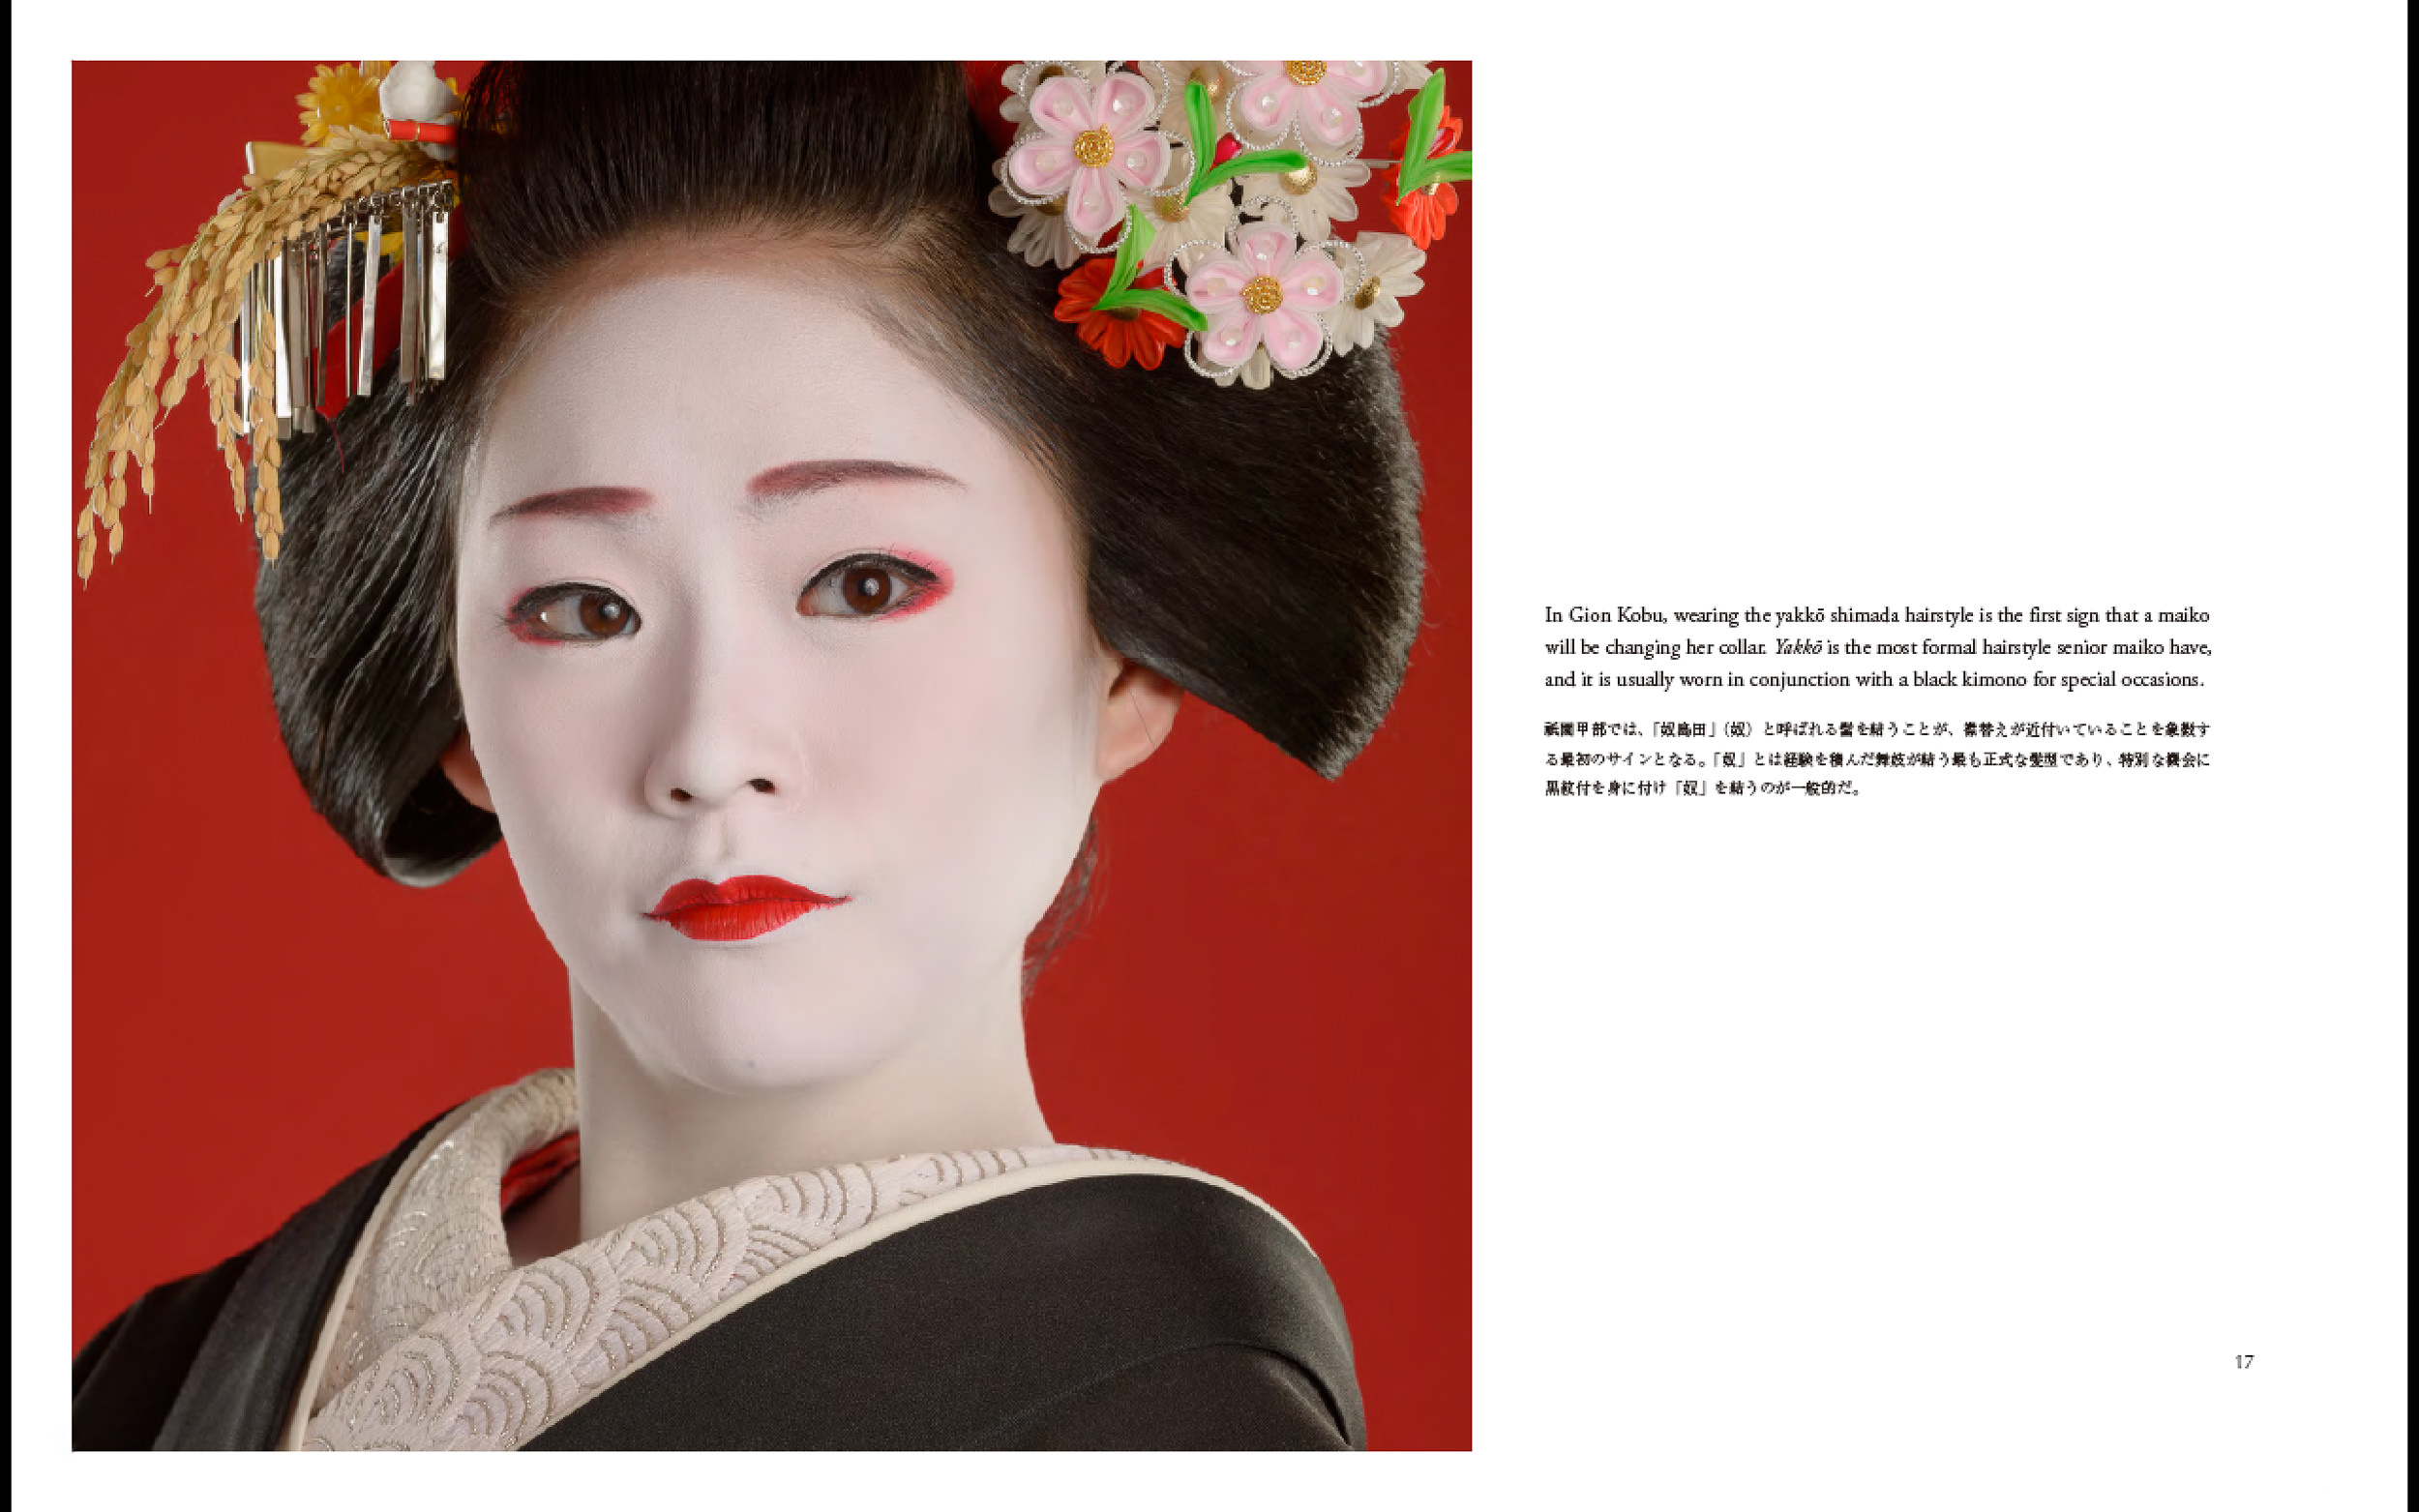 Now-a-Geisha-pages-16-17.jpg